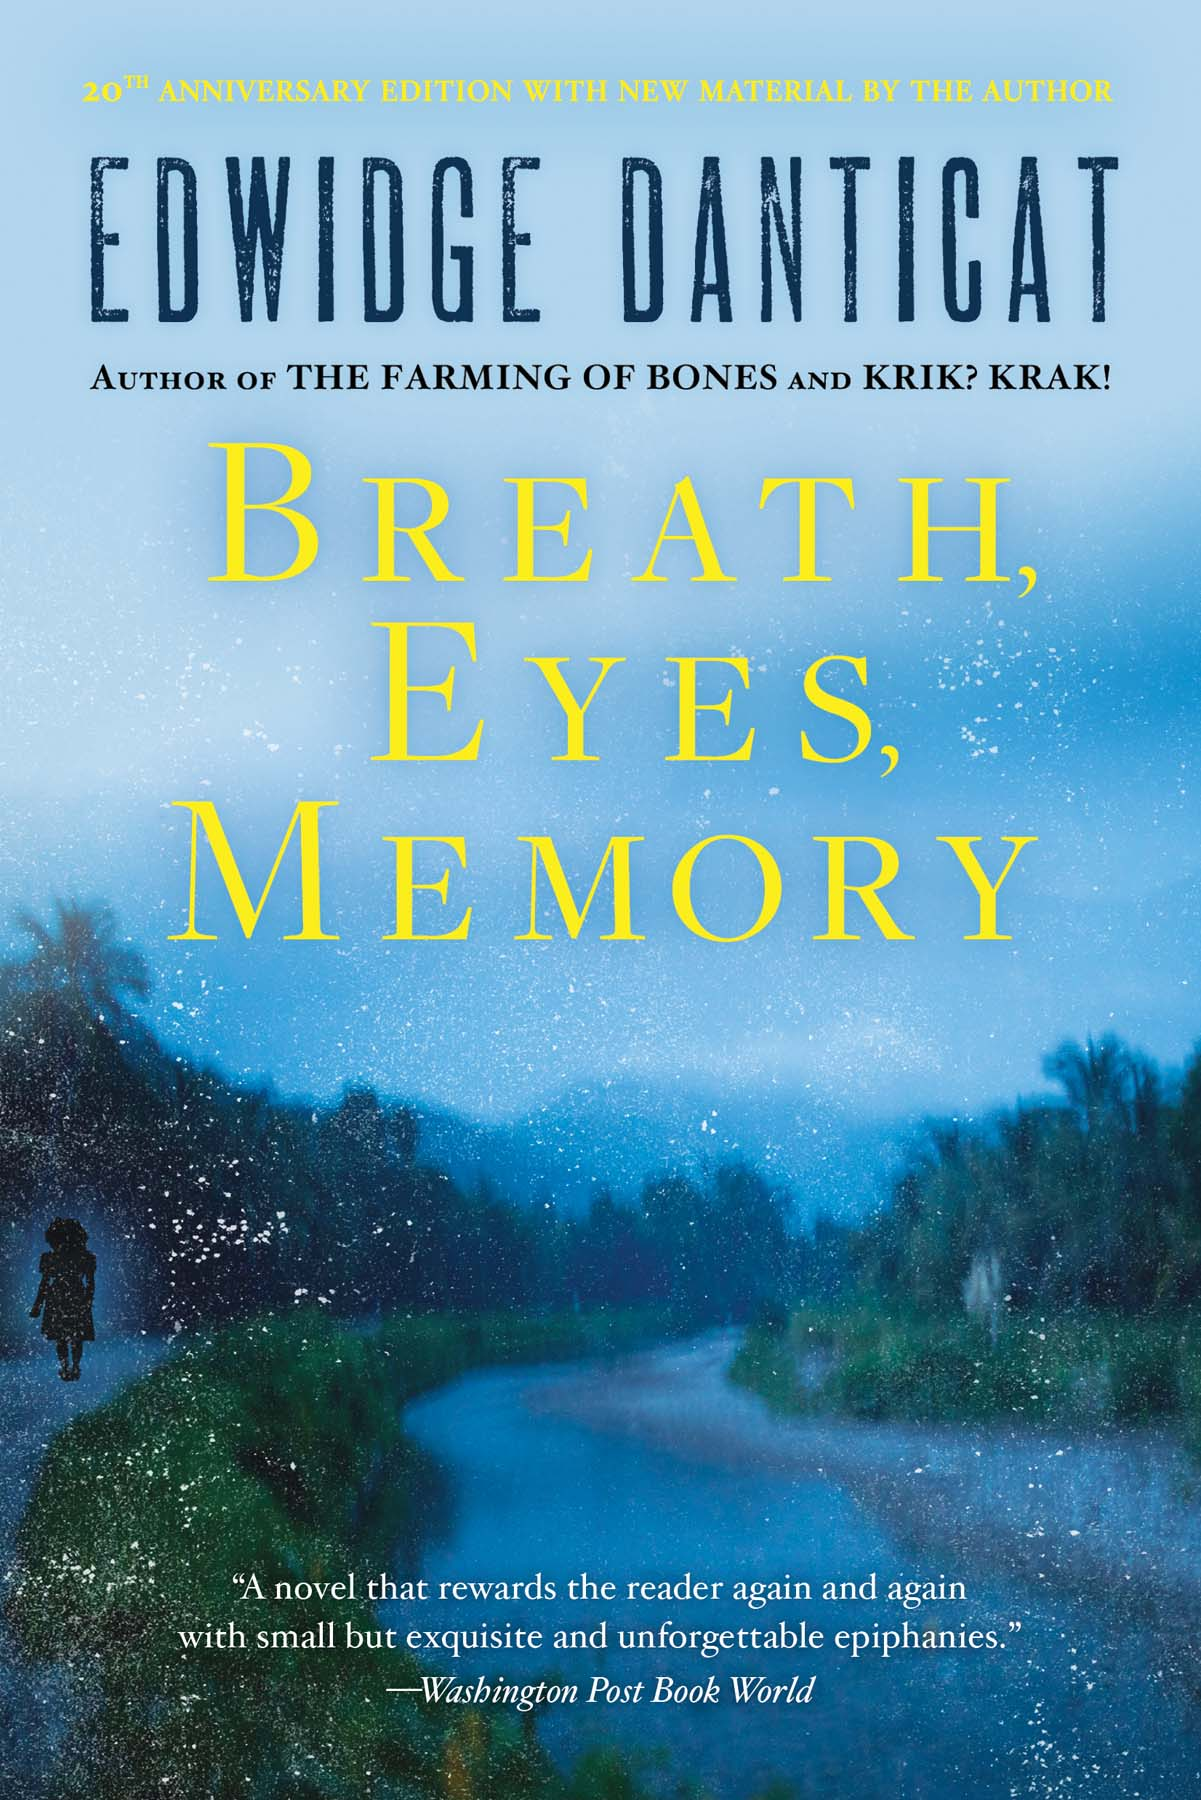 Breath, Eyes, MemoryBy EDWIDGE DANTICATcr: Soho Press